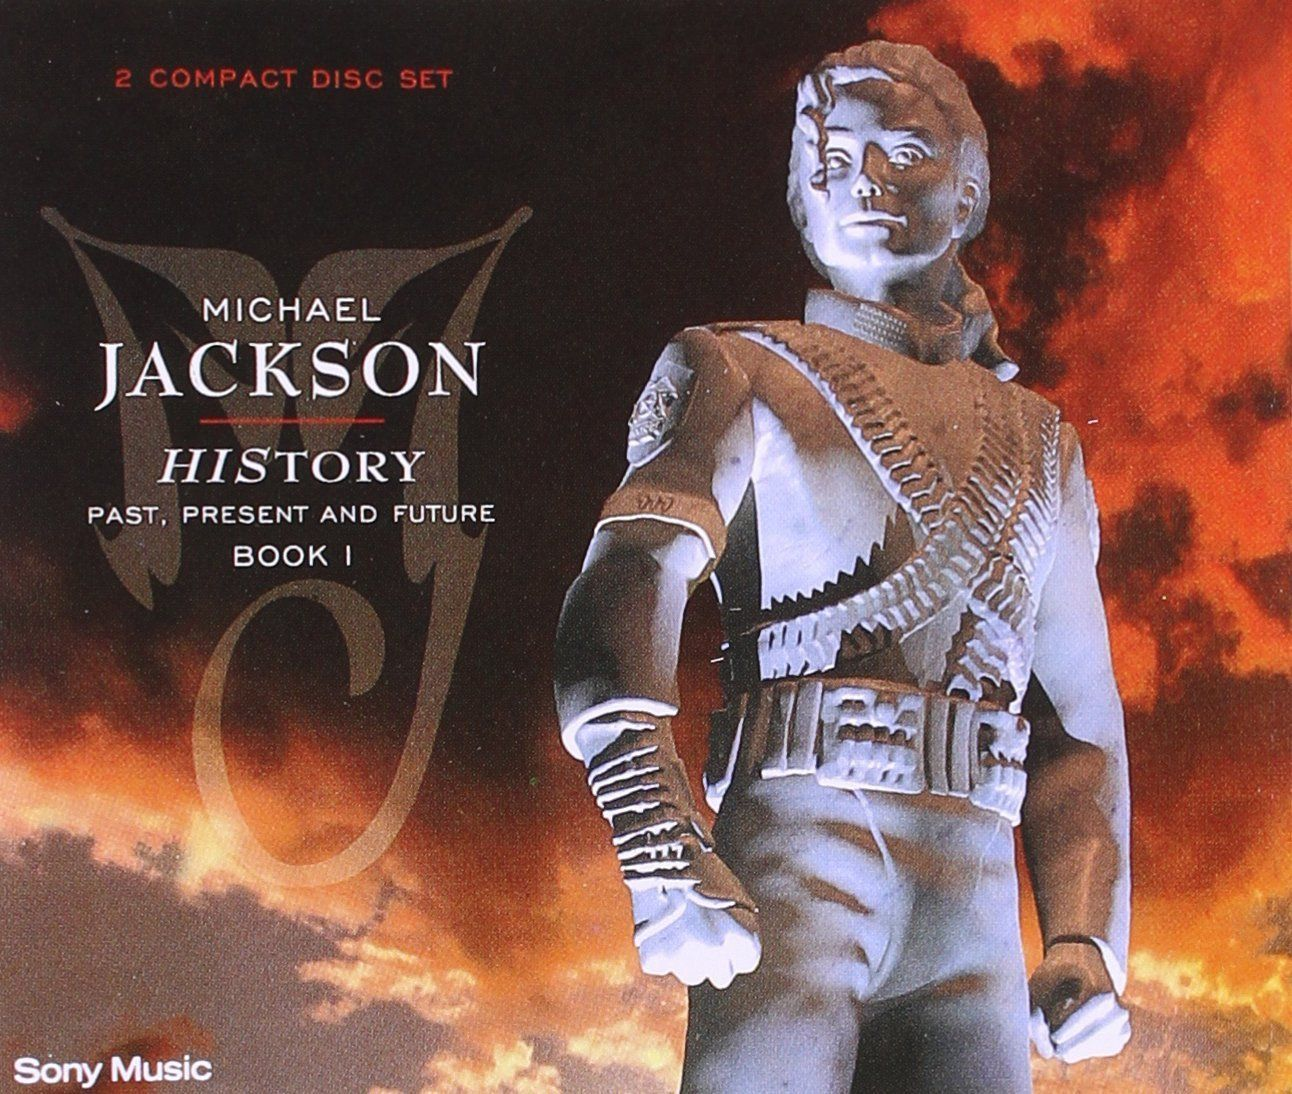 Michael Jackson - Greatest Hits - History Volume 1 album cover